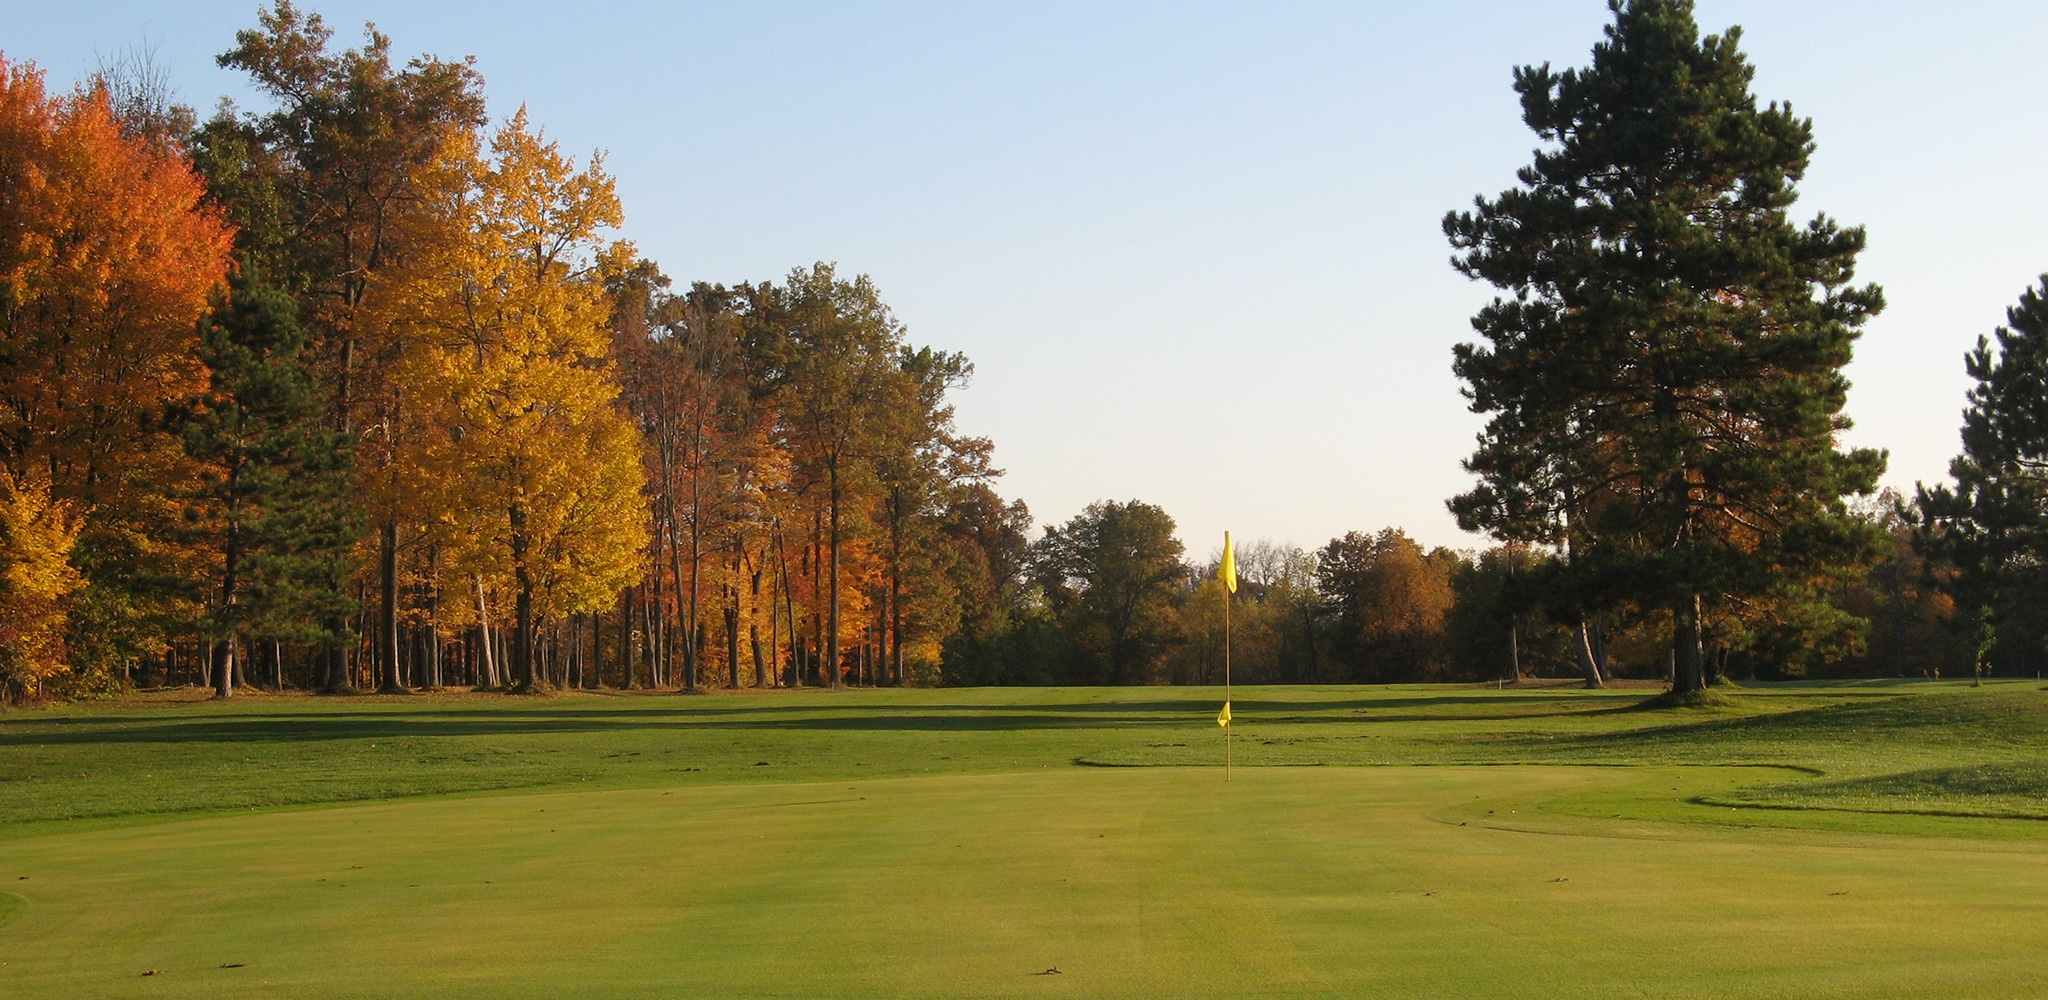 Enjoy Fall Golf in Grayling